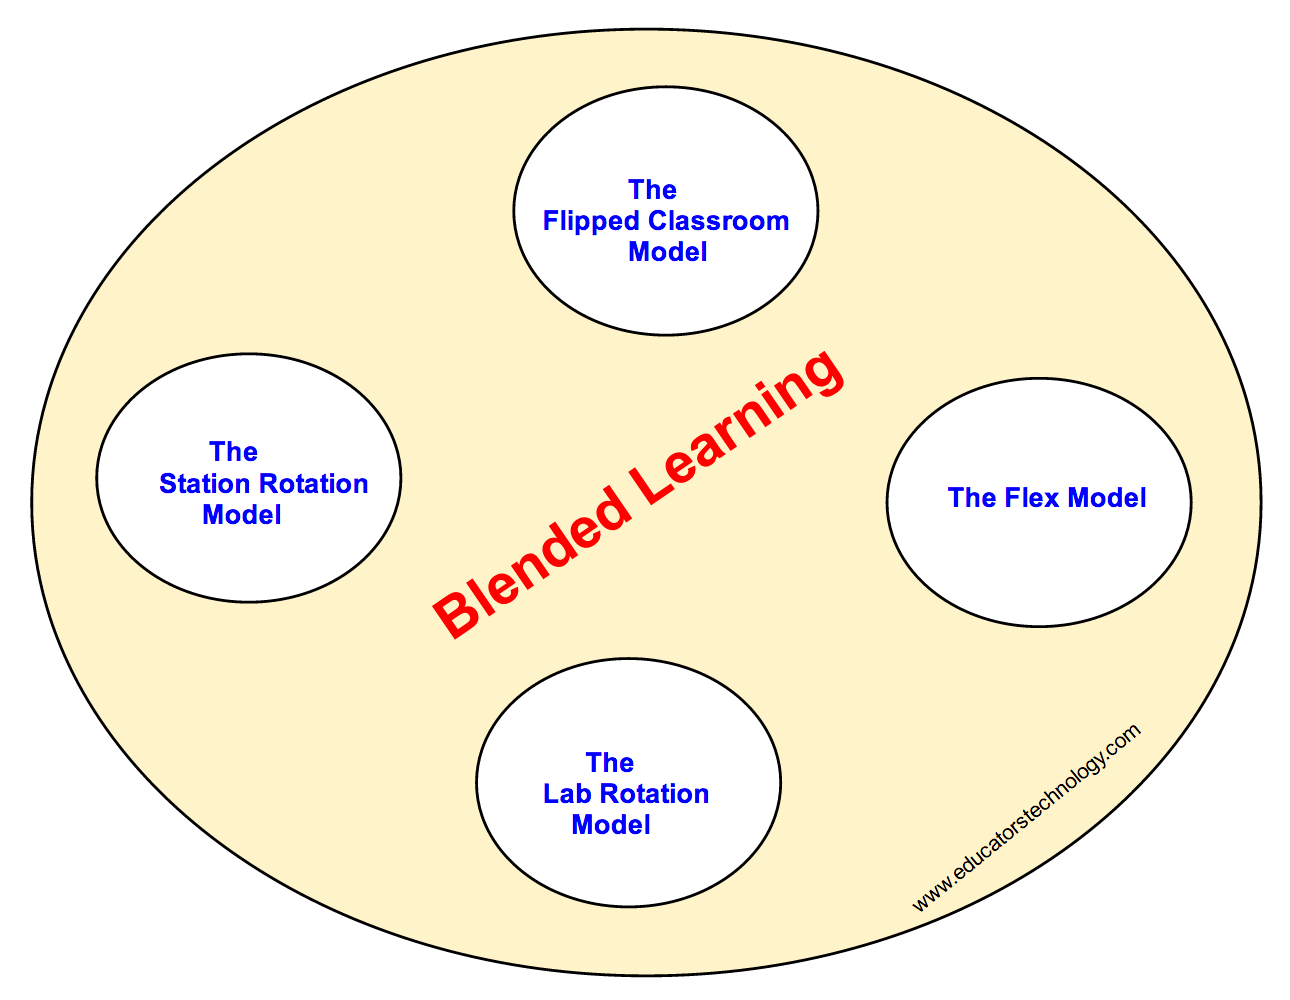 The Four Important Models Of Blended Learning Teachers Should Know